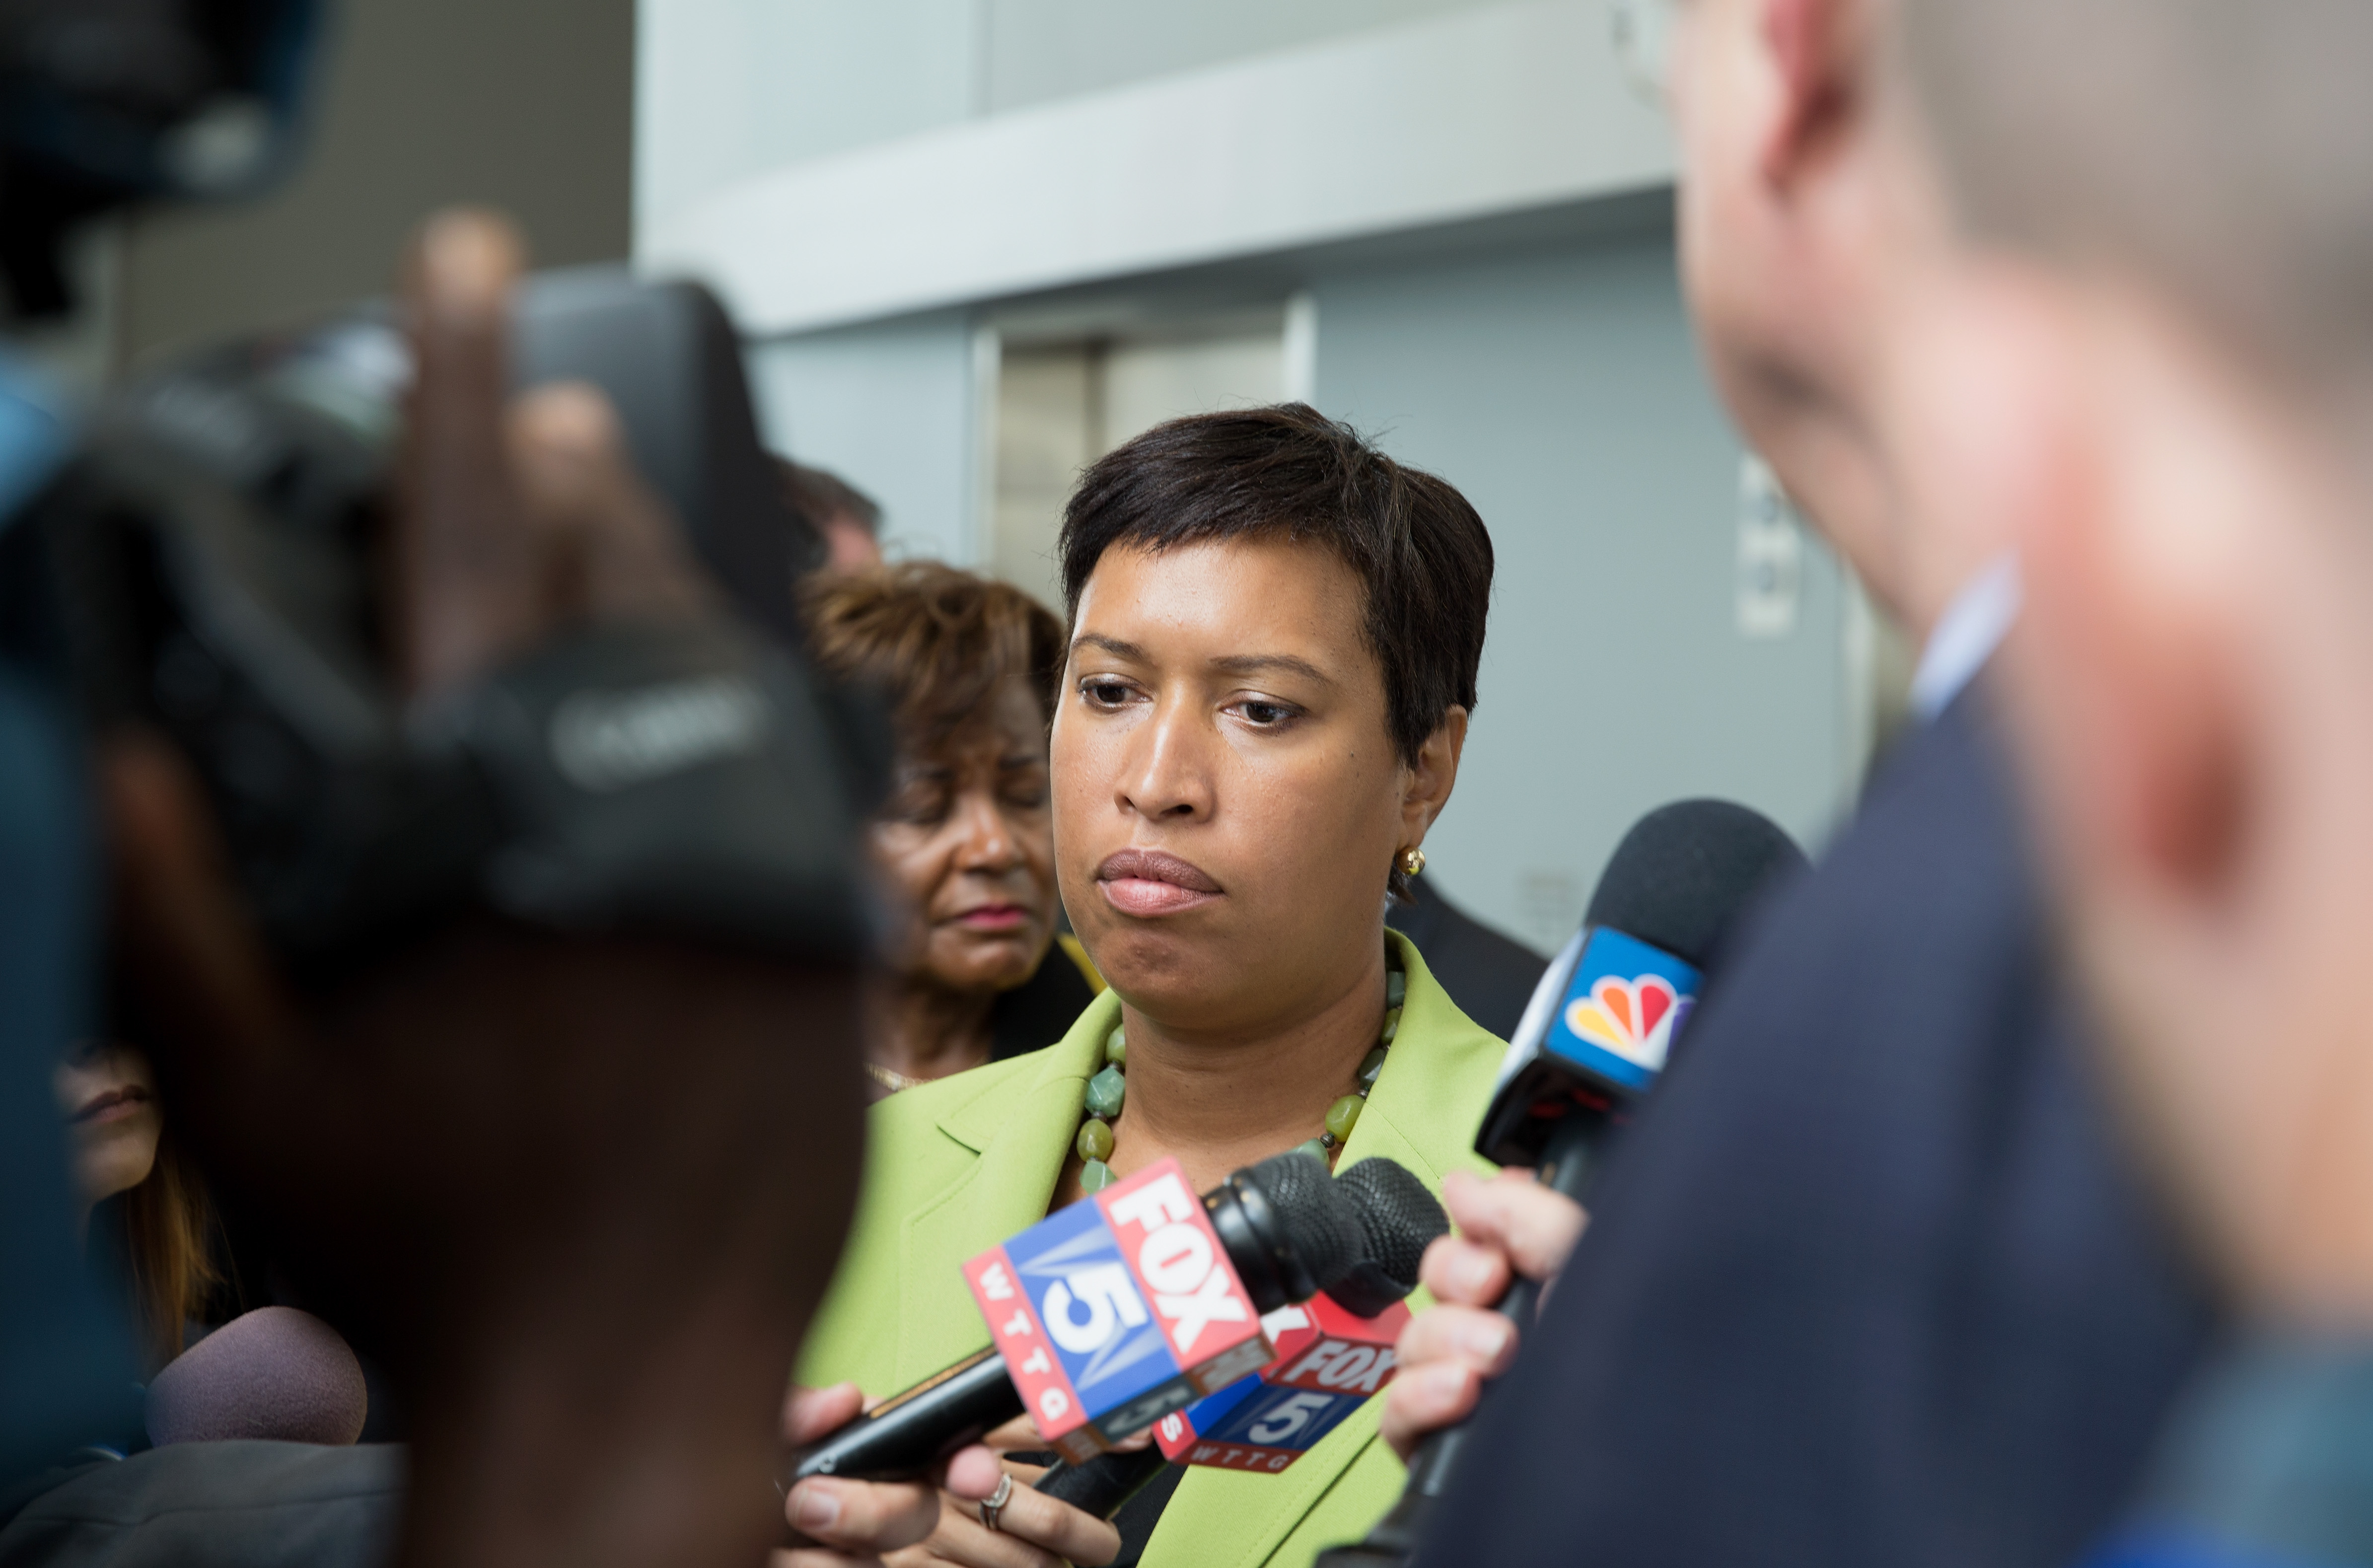 WASHINGTON, DC - JUNE 15: District of Columbia Mayor Muriel Bowser speaks at press conference on June 15, 2017 in Washington, DC. Bowser spoke on the recent arrests related to the Turkish Embassy incident on May 16, 2017 (Photo by Tasos Katopodis/Getty Images)